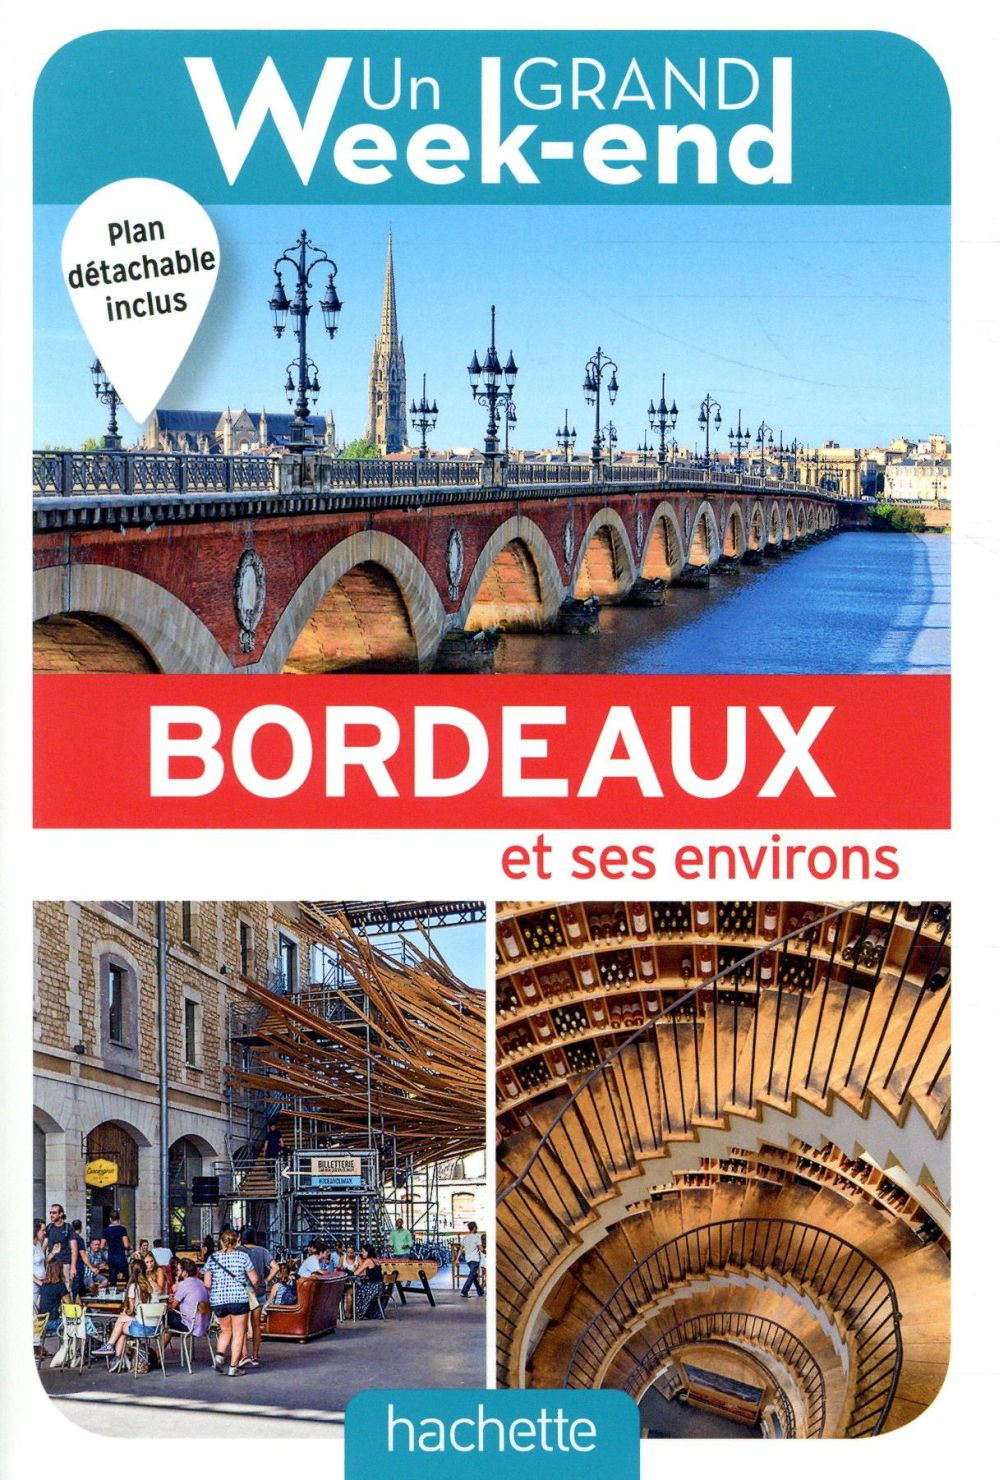 GUIDE UN GRAND WEEK-END A BORDEAUX